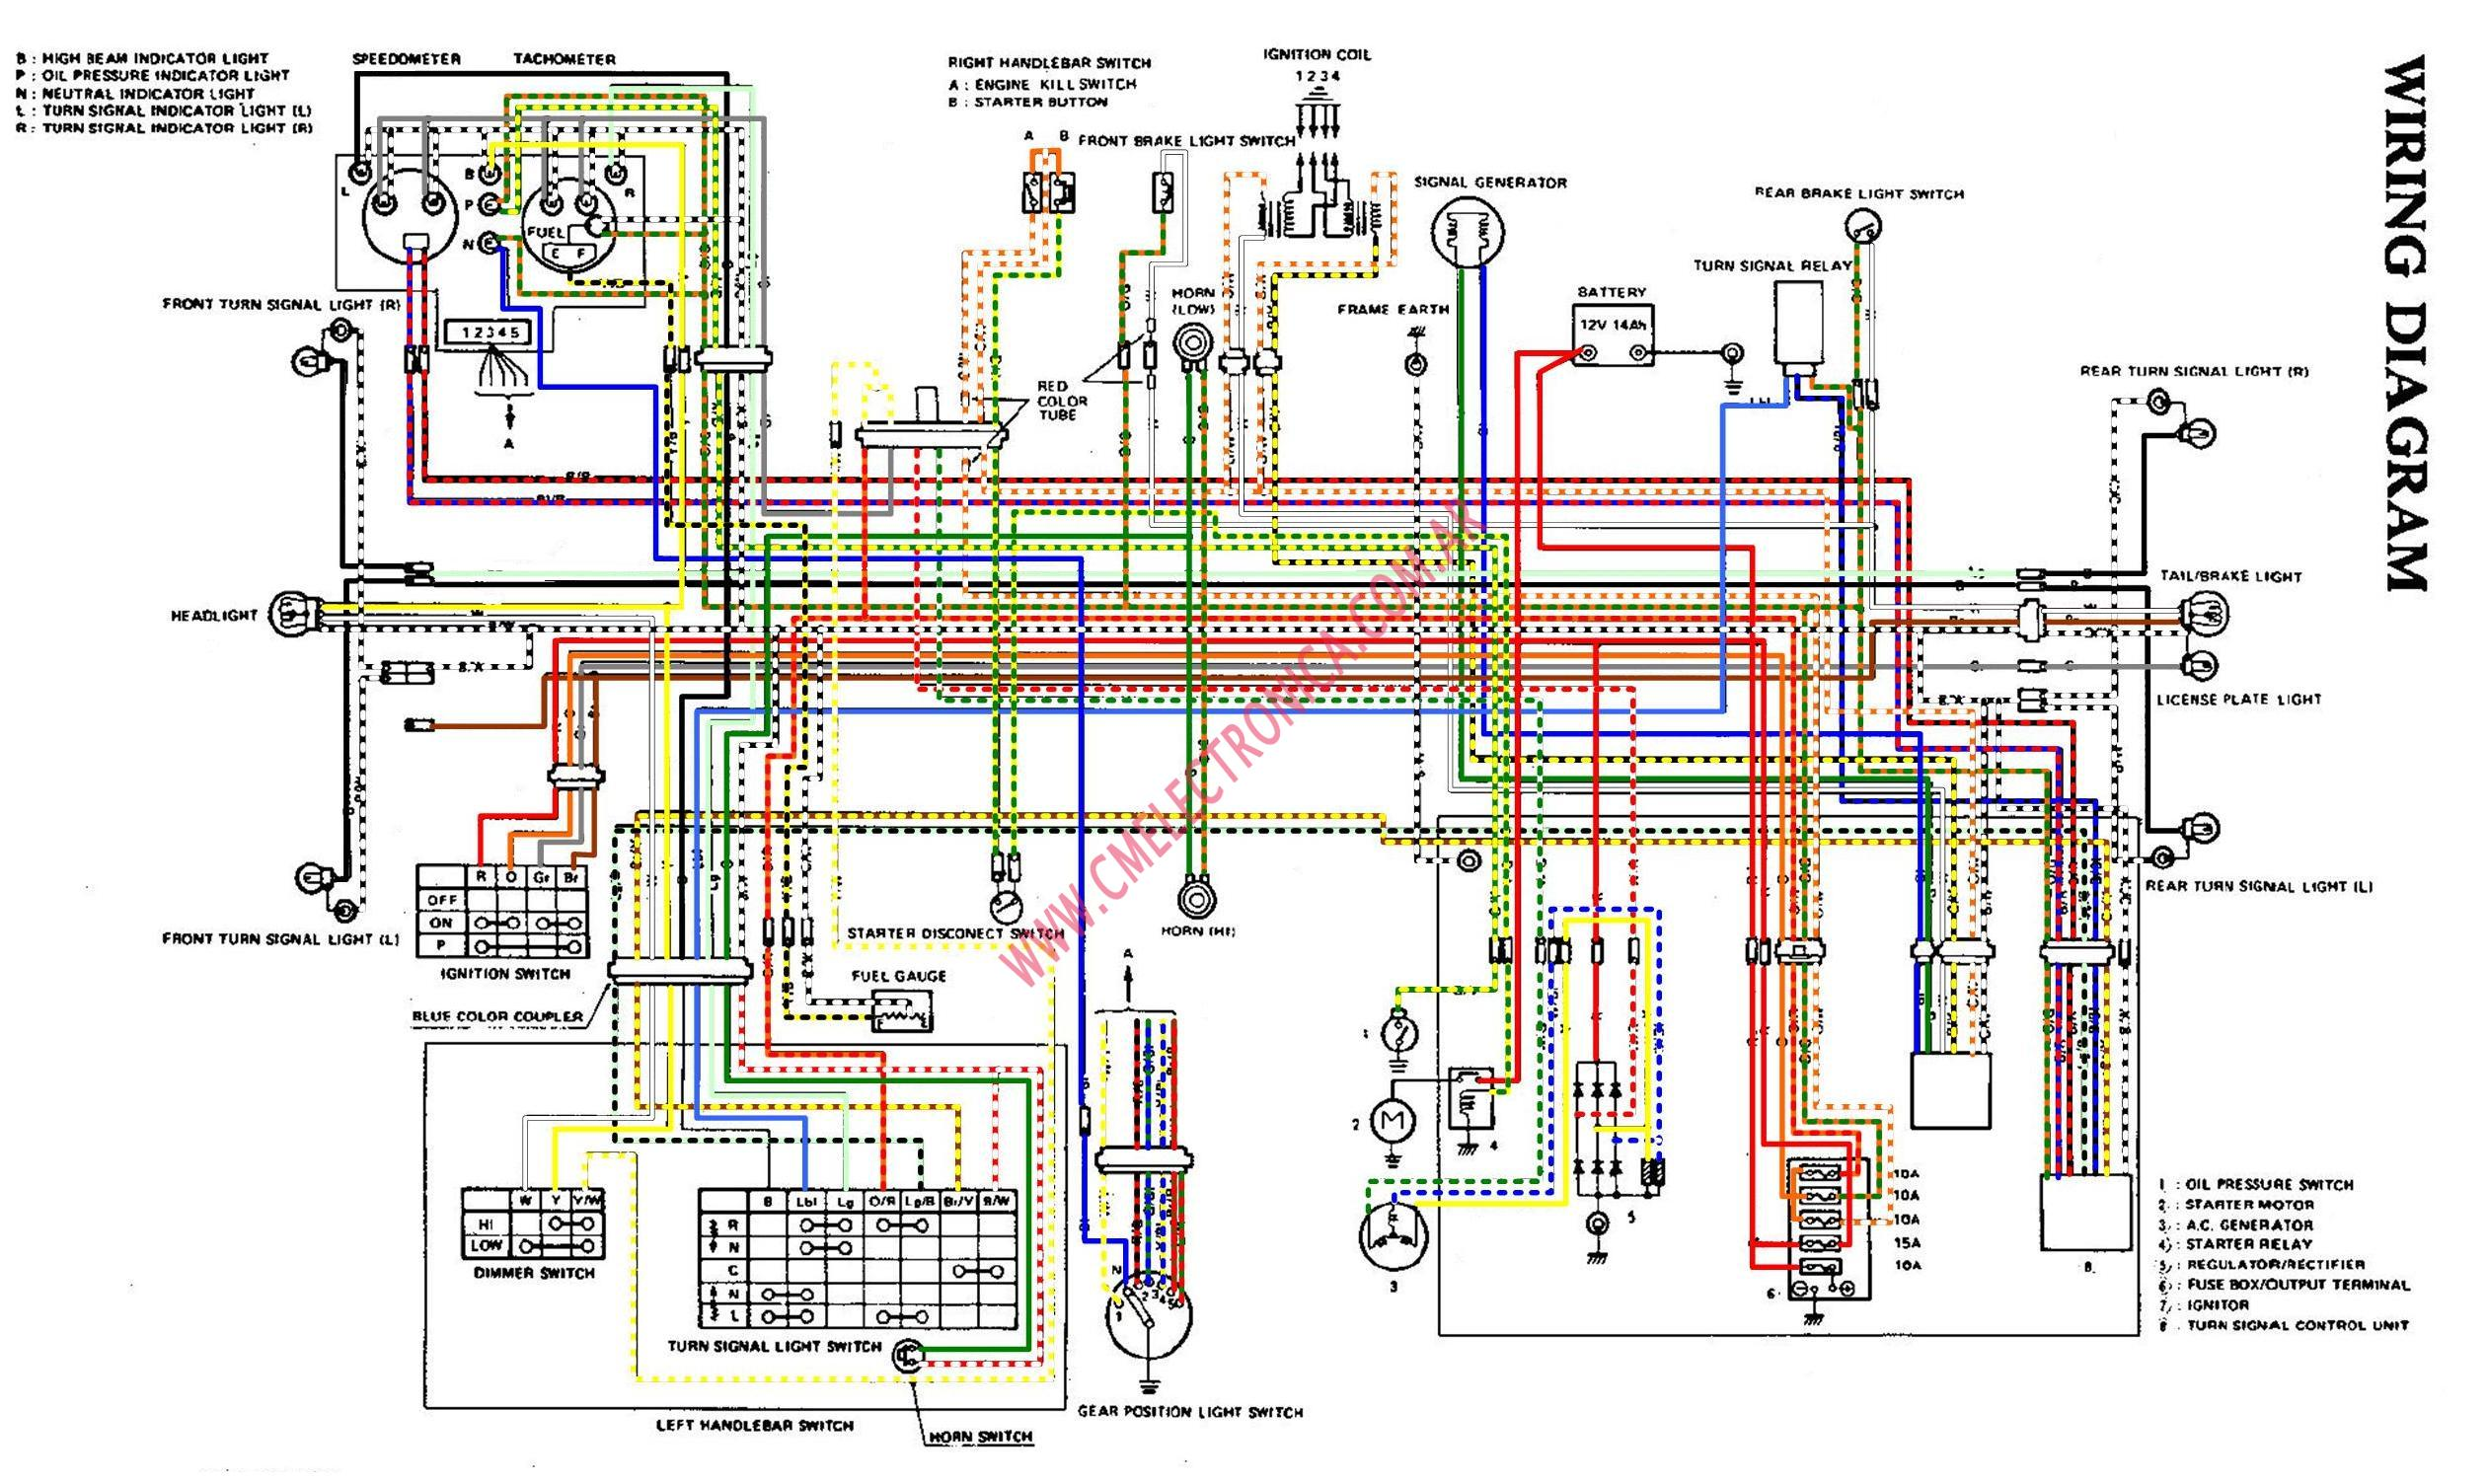 suzuki vz800 fuse box | love-constant wiring diagram -  love-constant.ilcasaledelbarone.it  ilcasaledelbarone.it